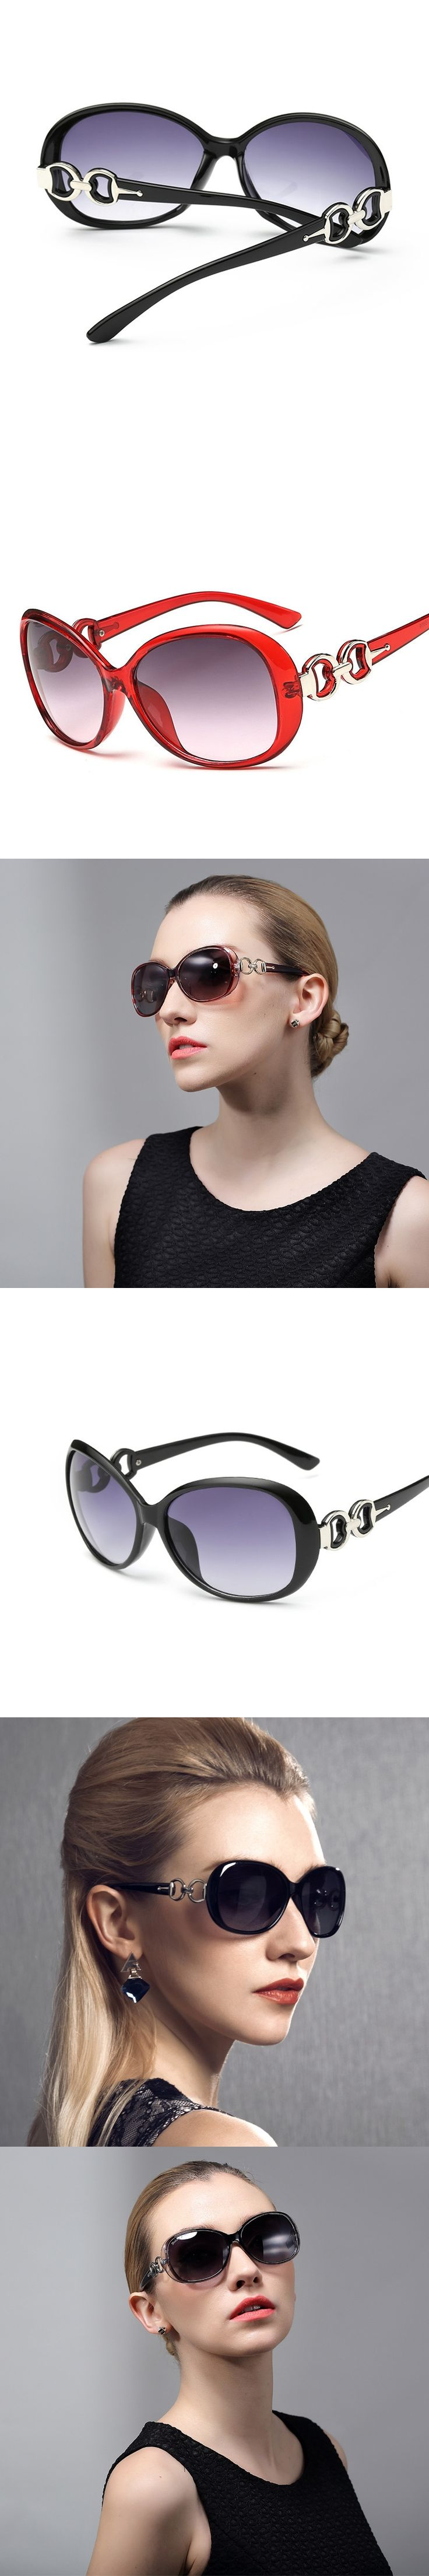 Fashion Round Sunglasses Women Brand Design Metal Vintage Pattern Sun Glasses Men Gafas Retro Glasses Oculos De Sol Feminino